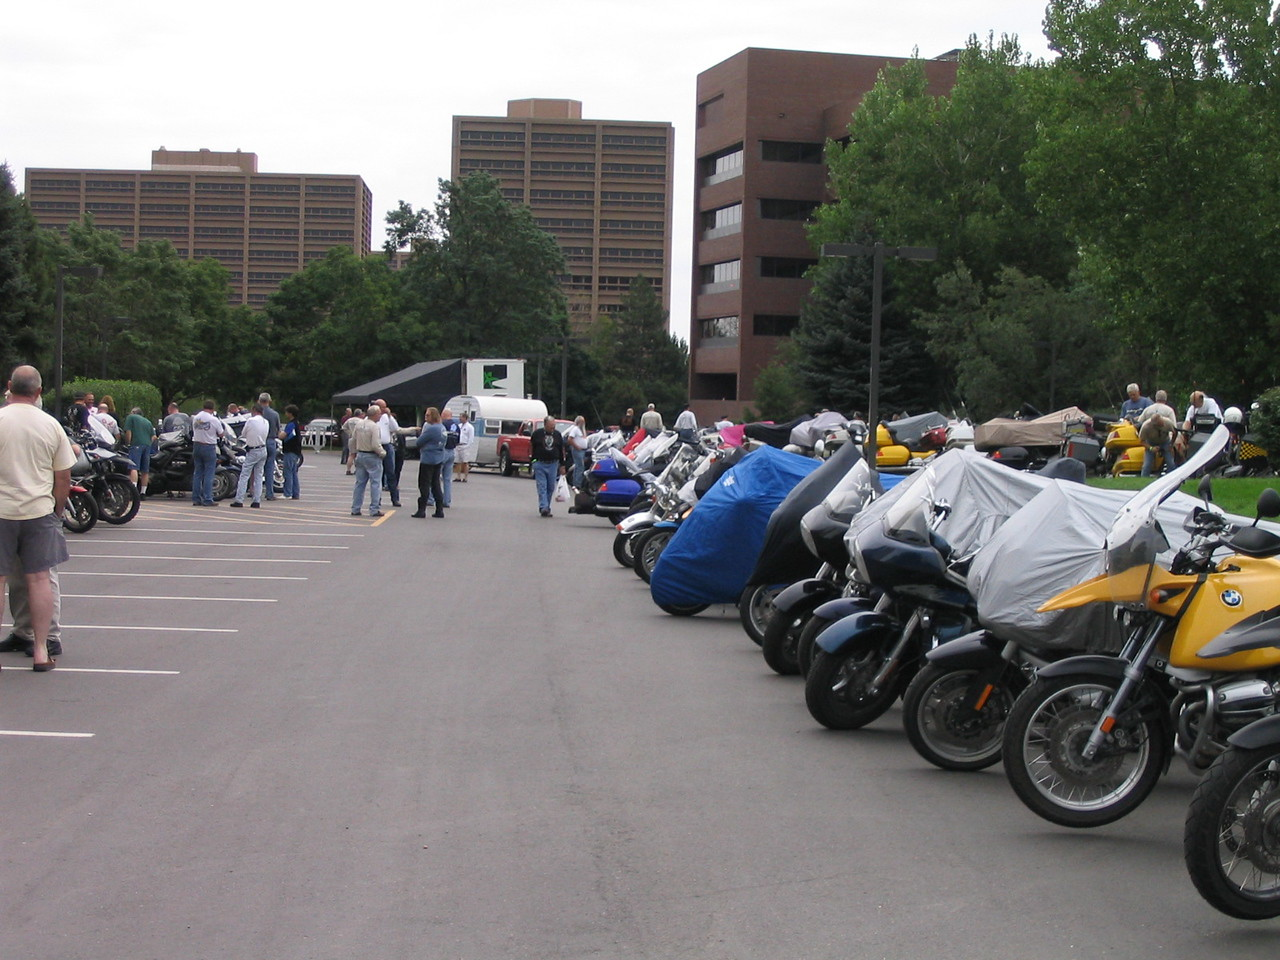 At the end of this row of motorcycles parks a vintage travel trailer.  HUH?